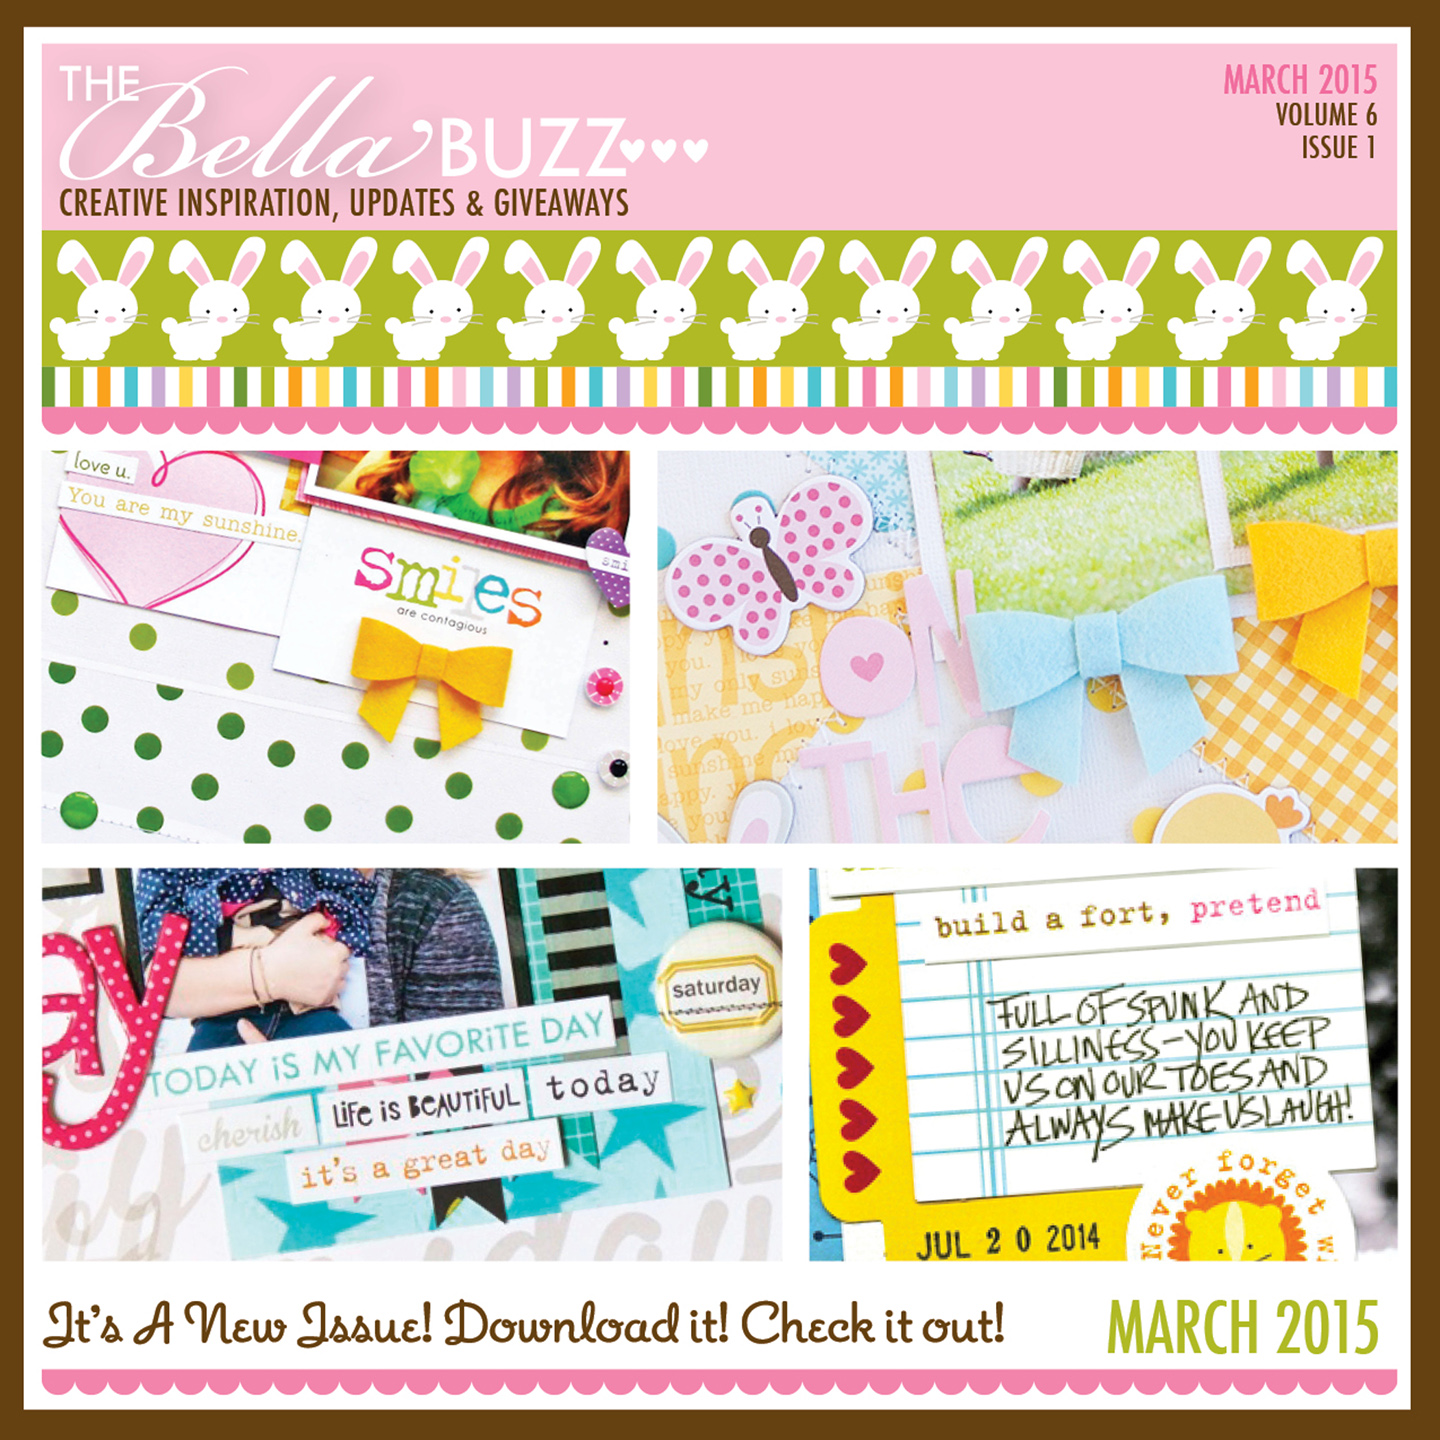 The Bella Buzz - March 2015